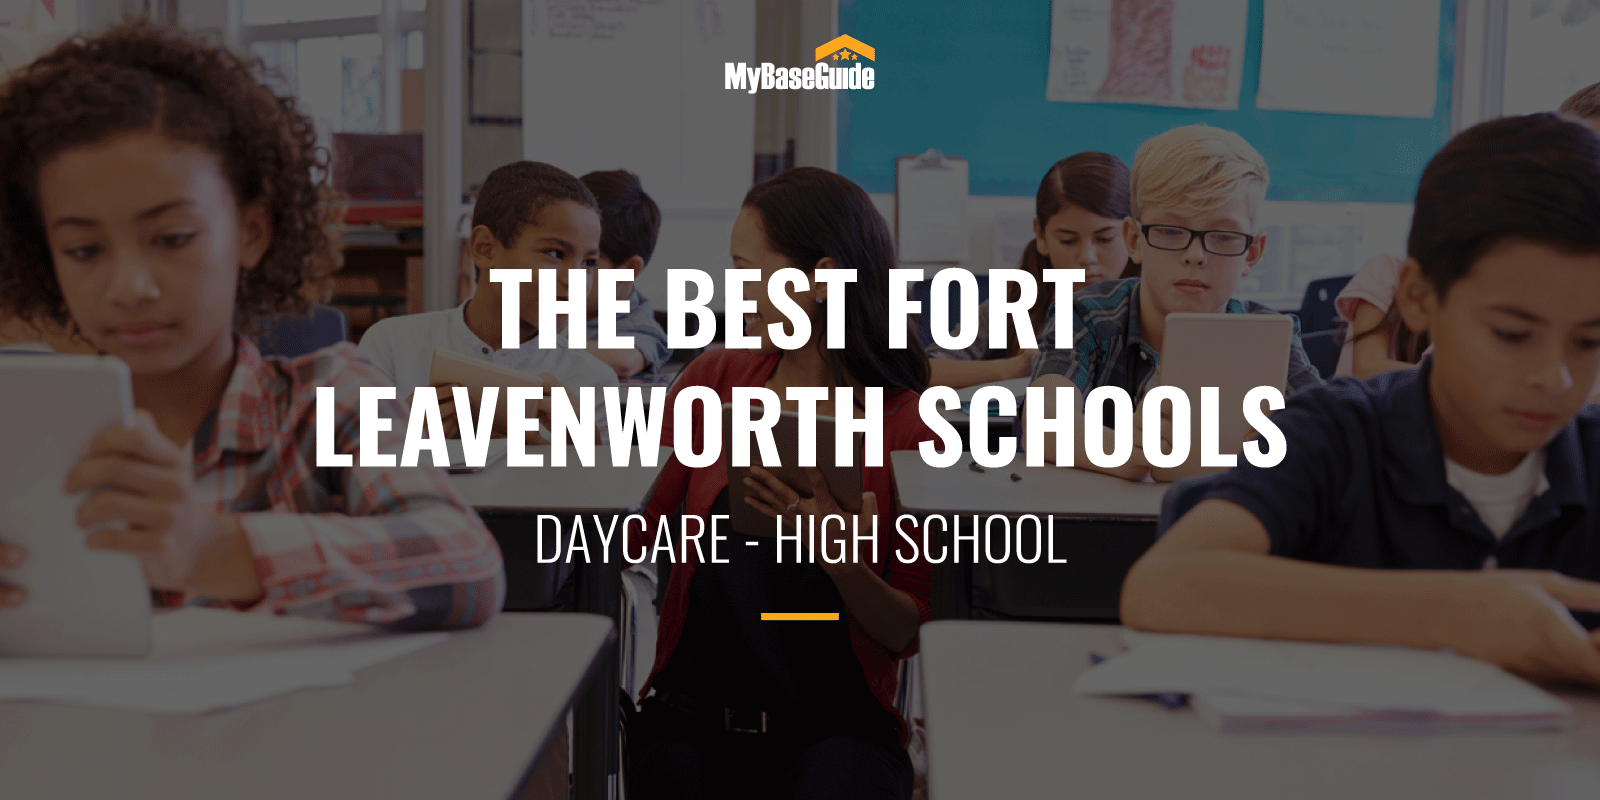 The Best Fort Irwin Schools: Daycare - High School